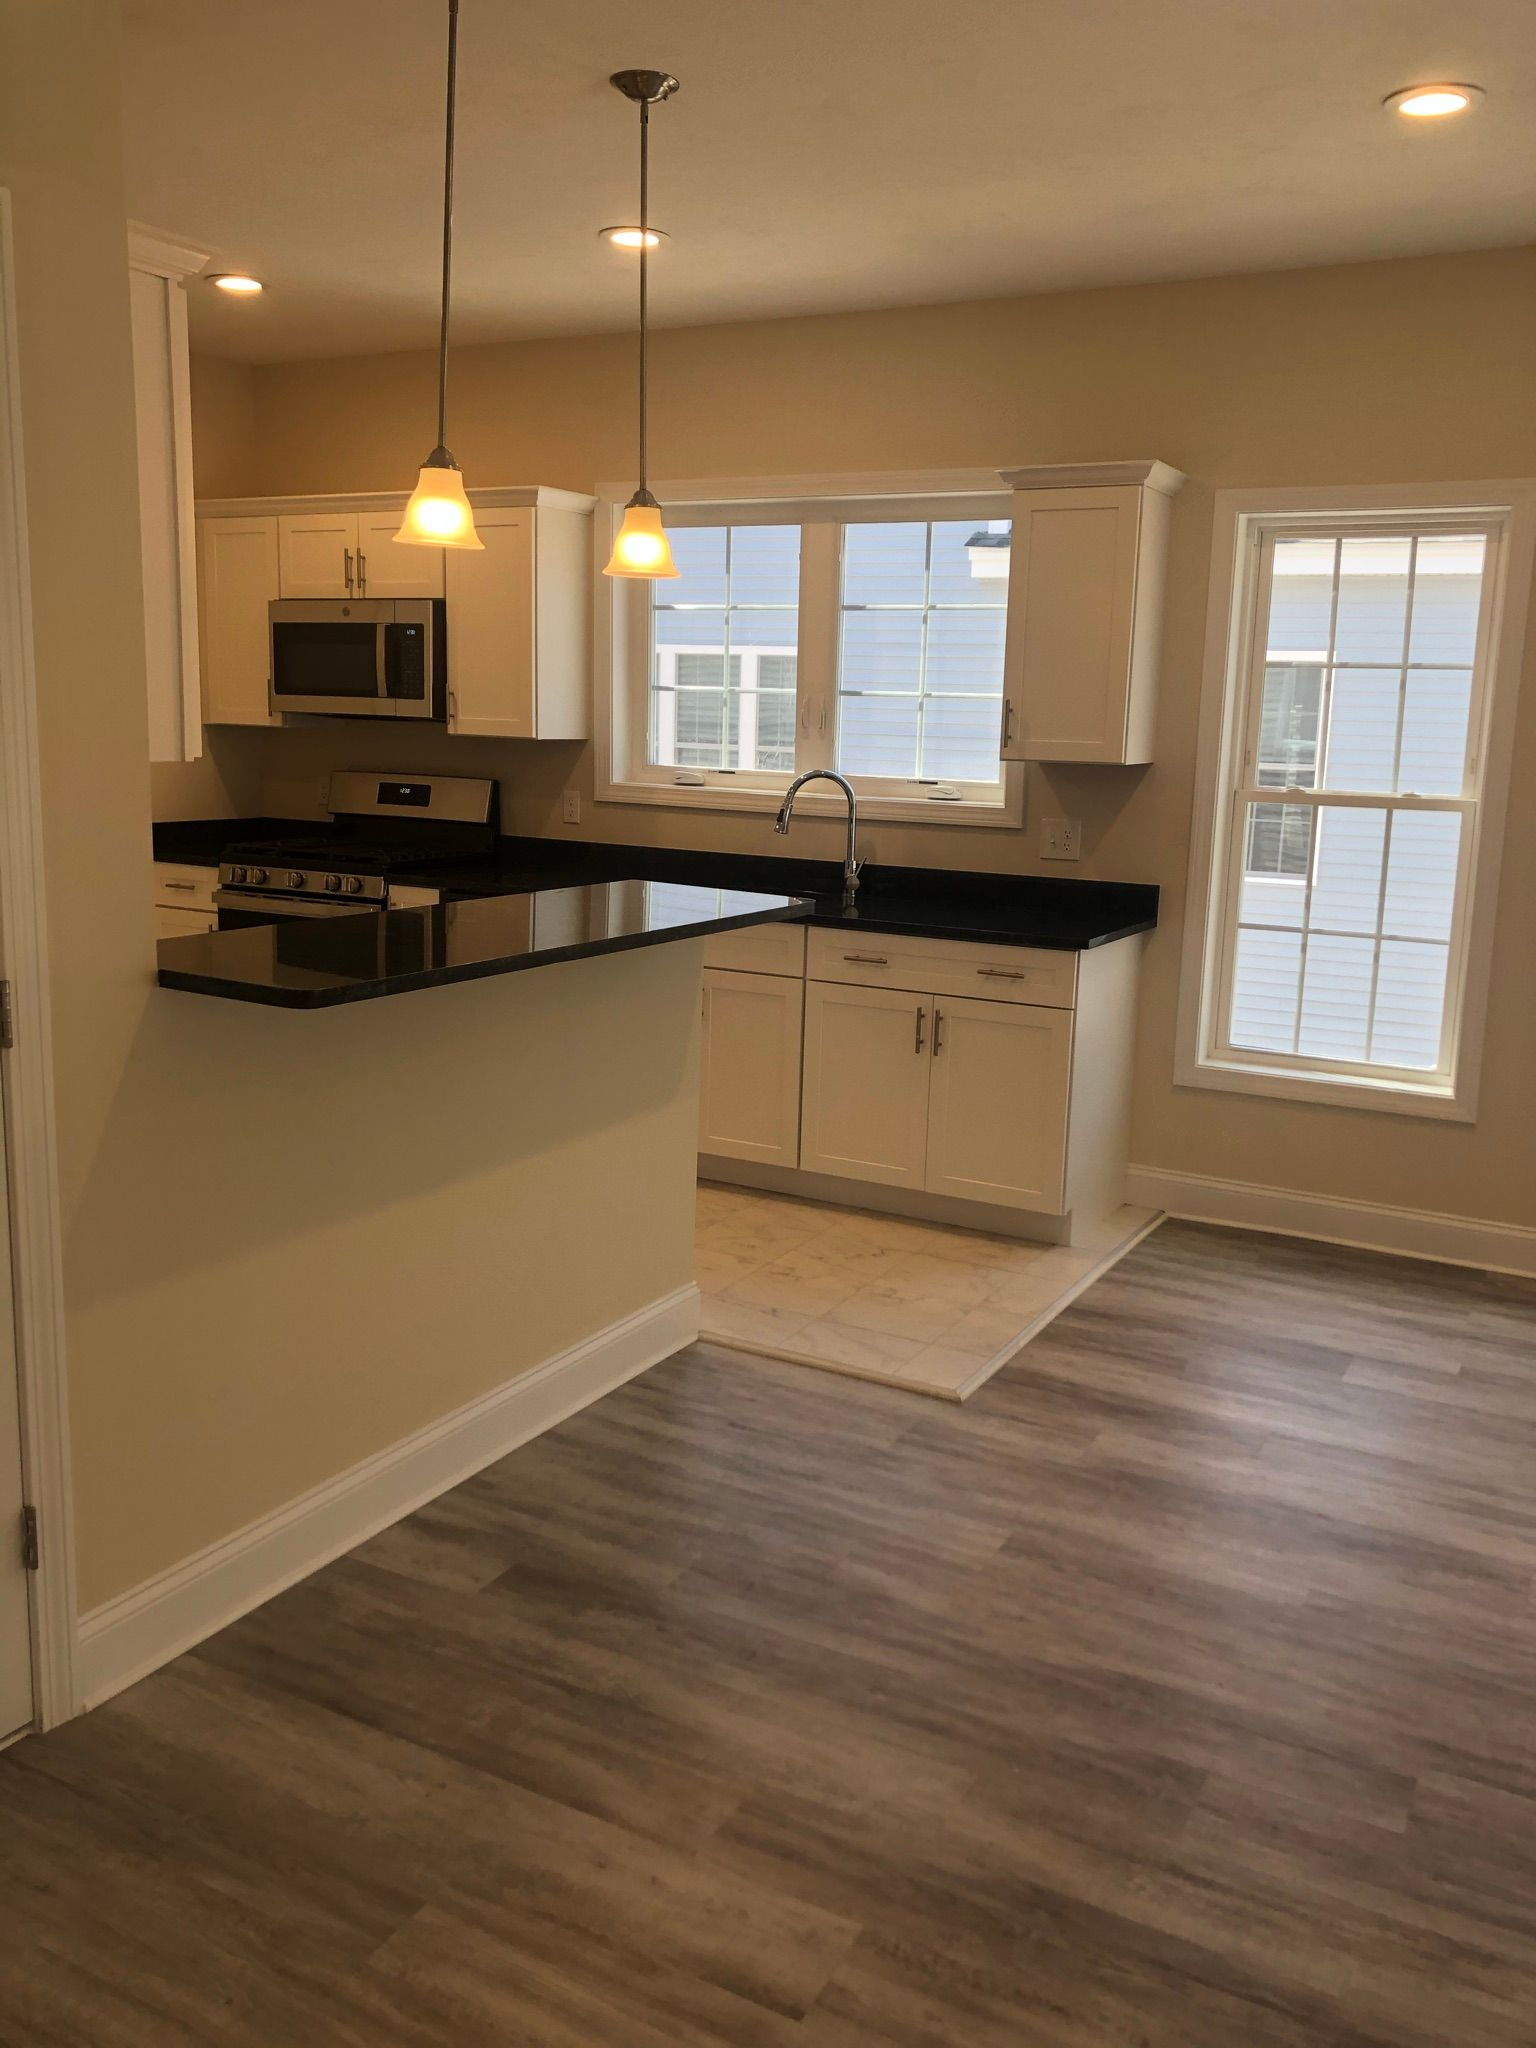 Kitchen featured in The Villagio By Fafard Real Estate in Worcester, MA